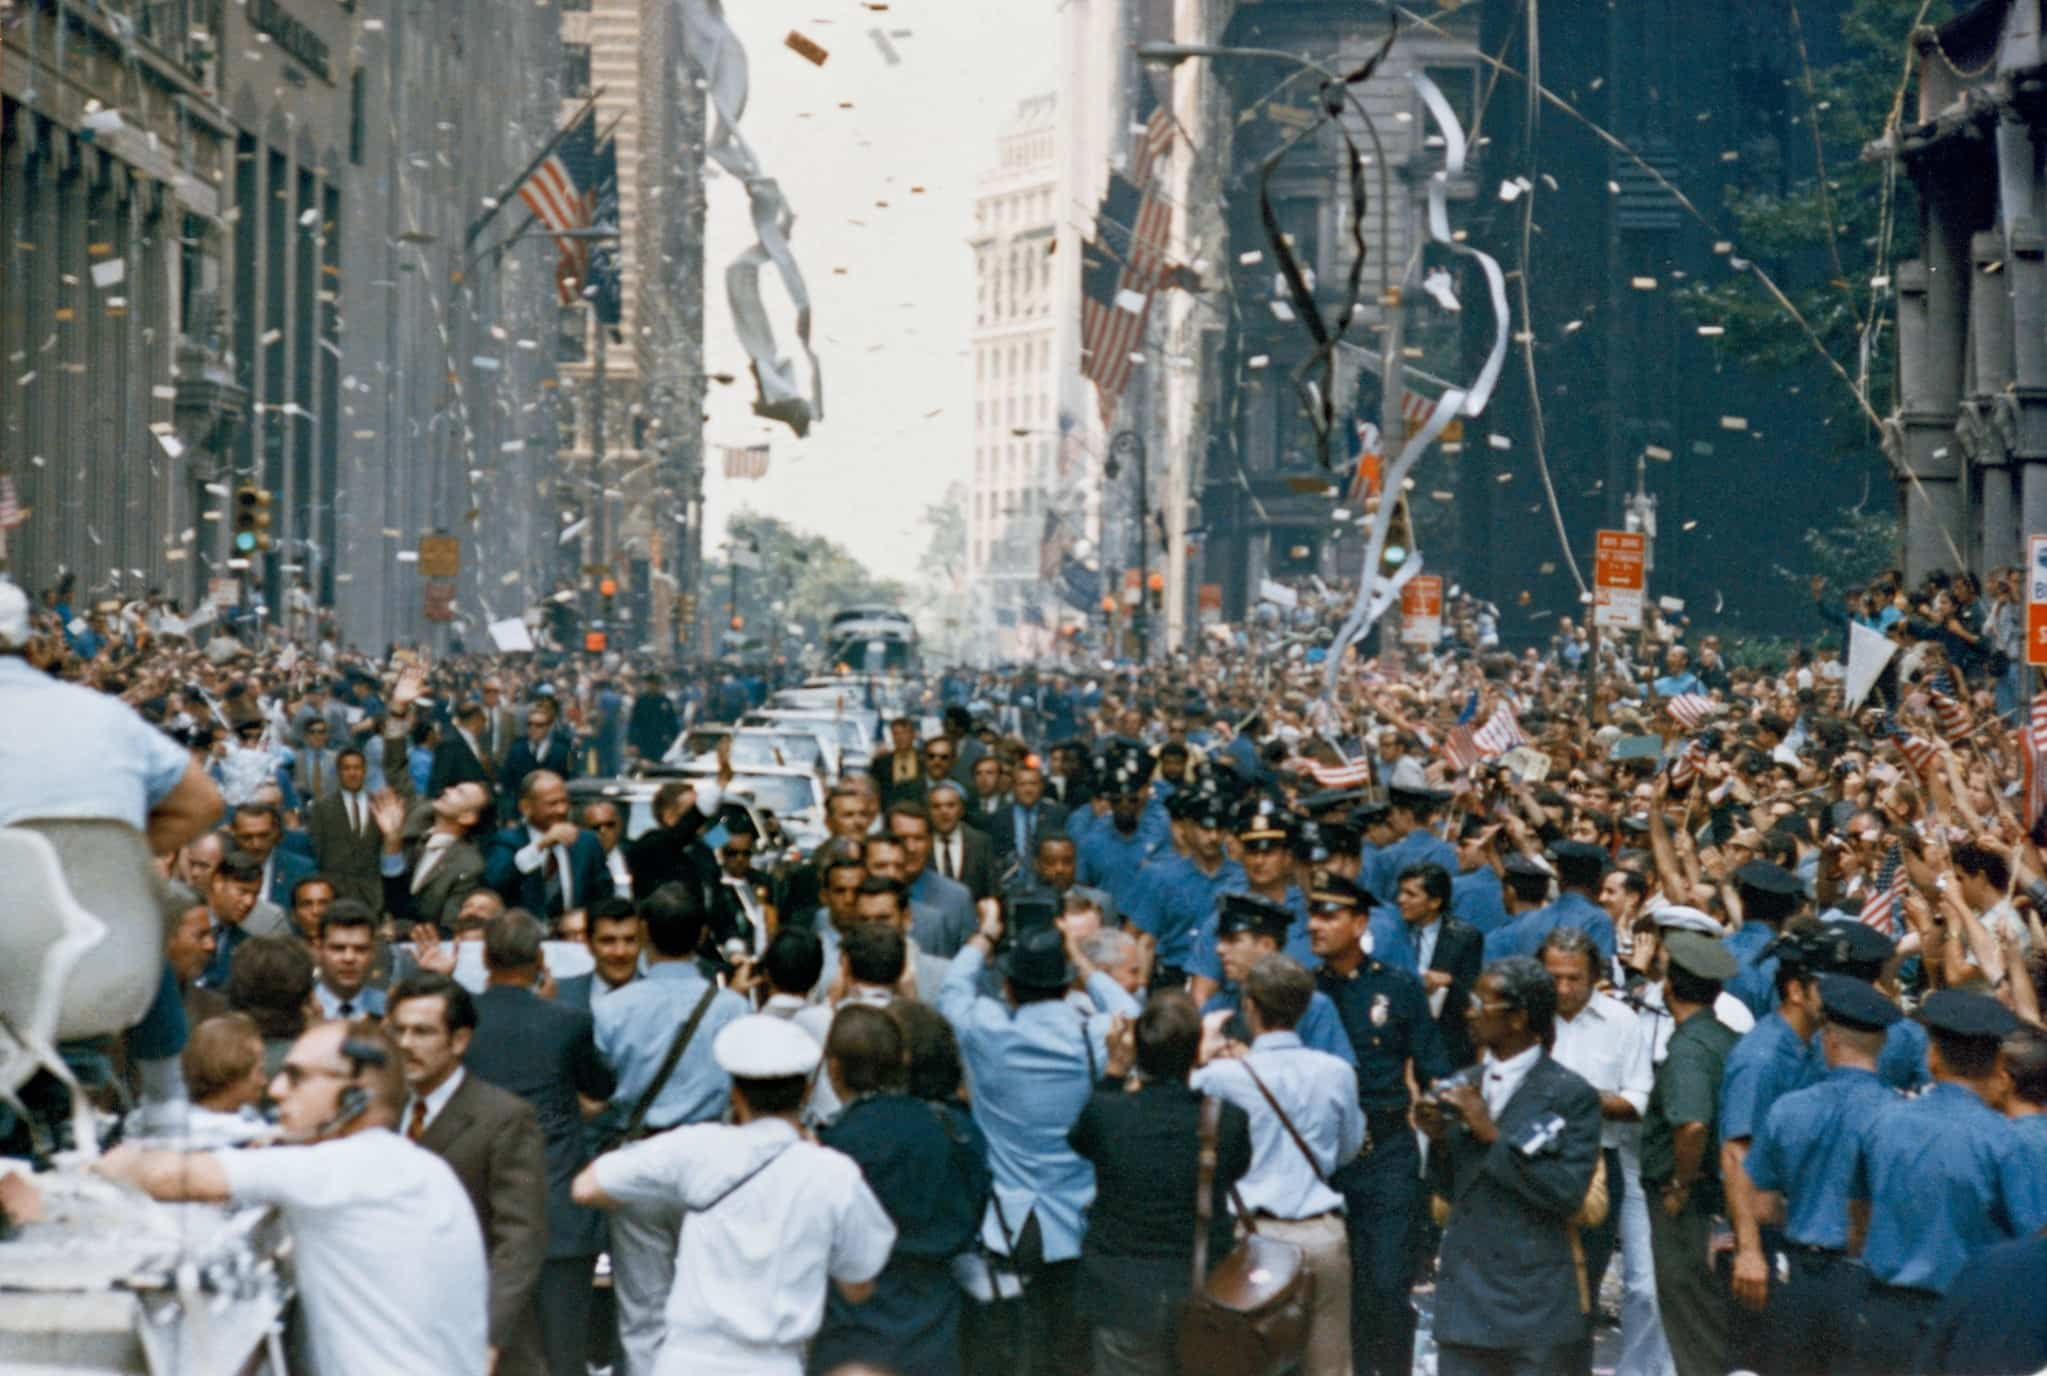 New York City welcomed the Apollo 11 crew with a ticker tape parade down Broadway and Park Avenue